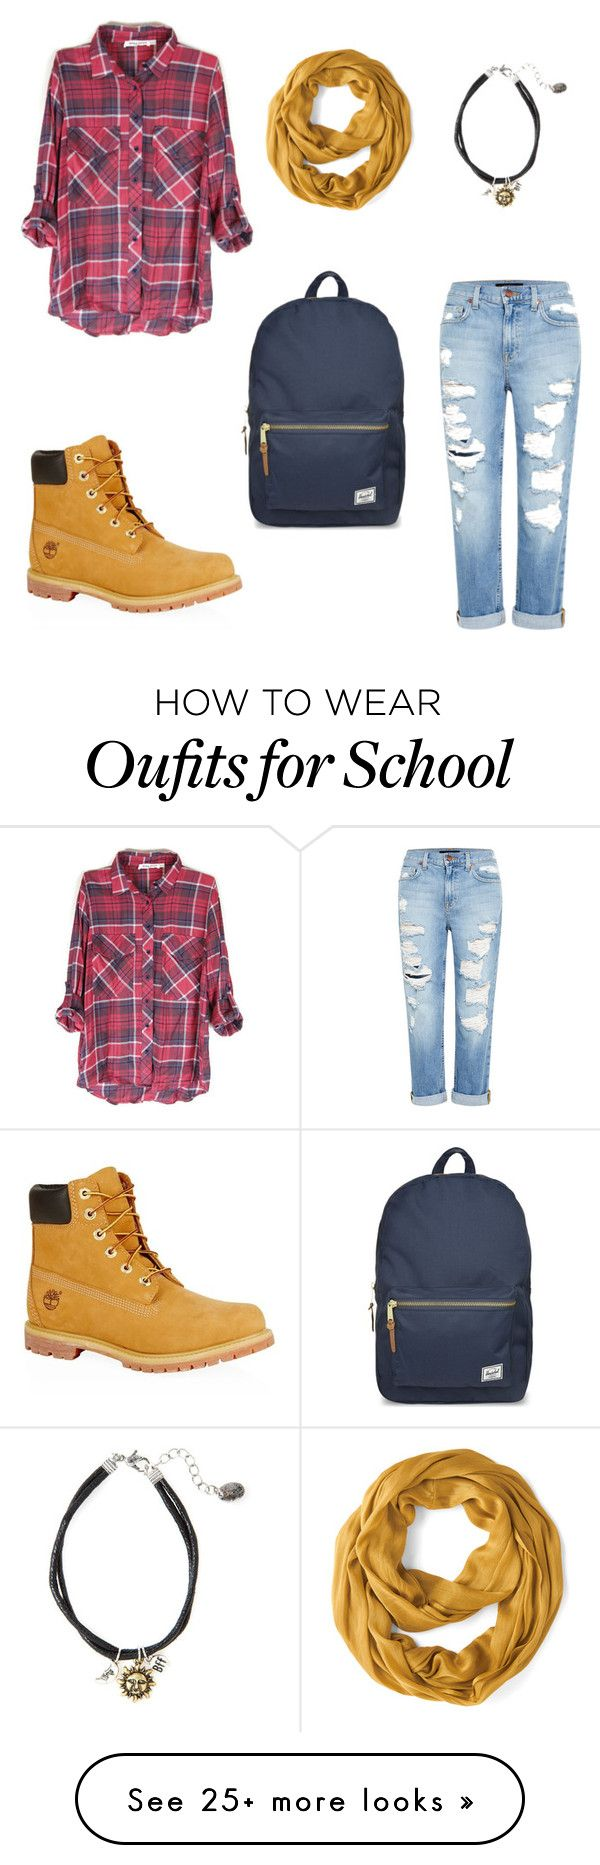 """"""" Fall school outfit """" by thearctic on Polyvore featuring Genetic Denim, Timberland and Herschel Supply Co."""